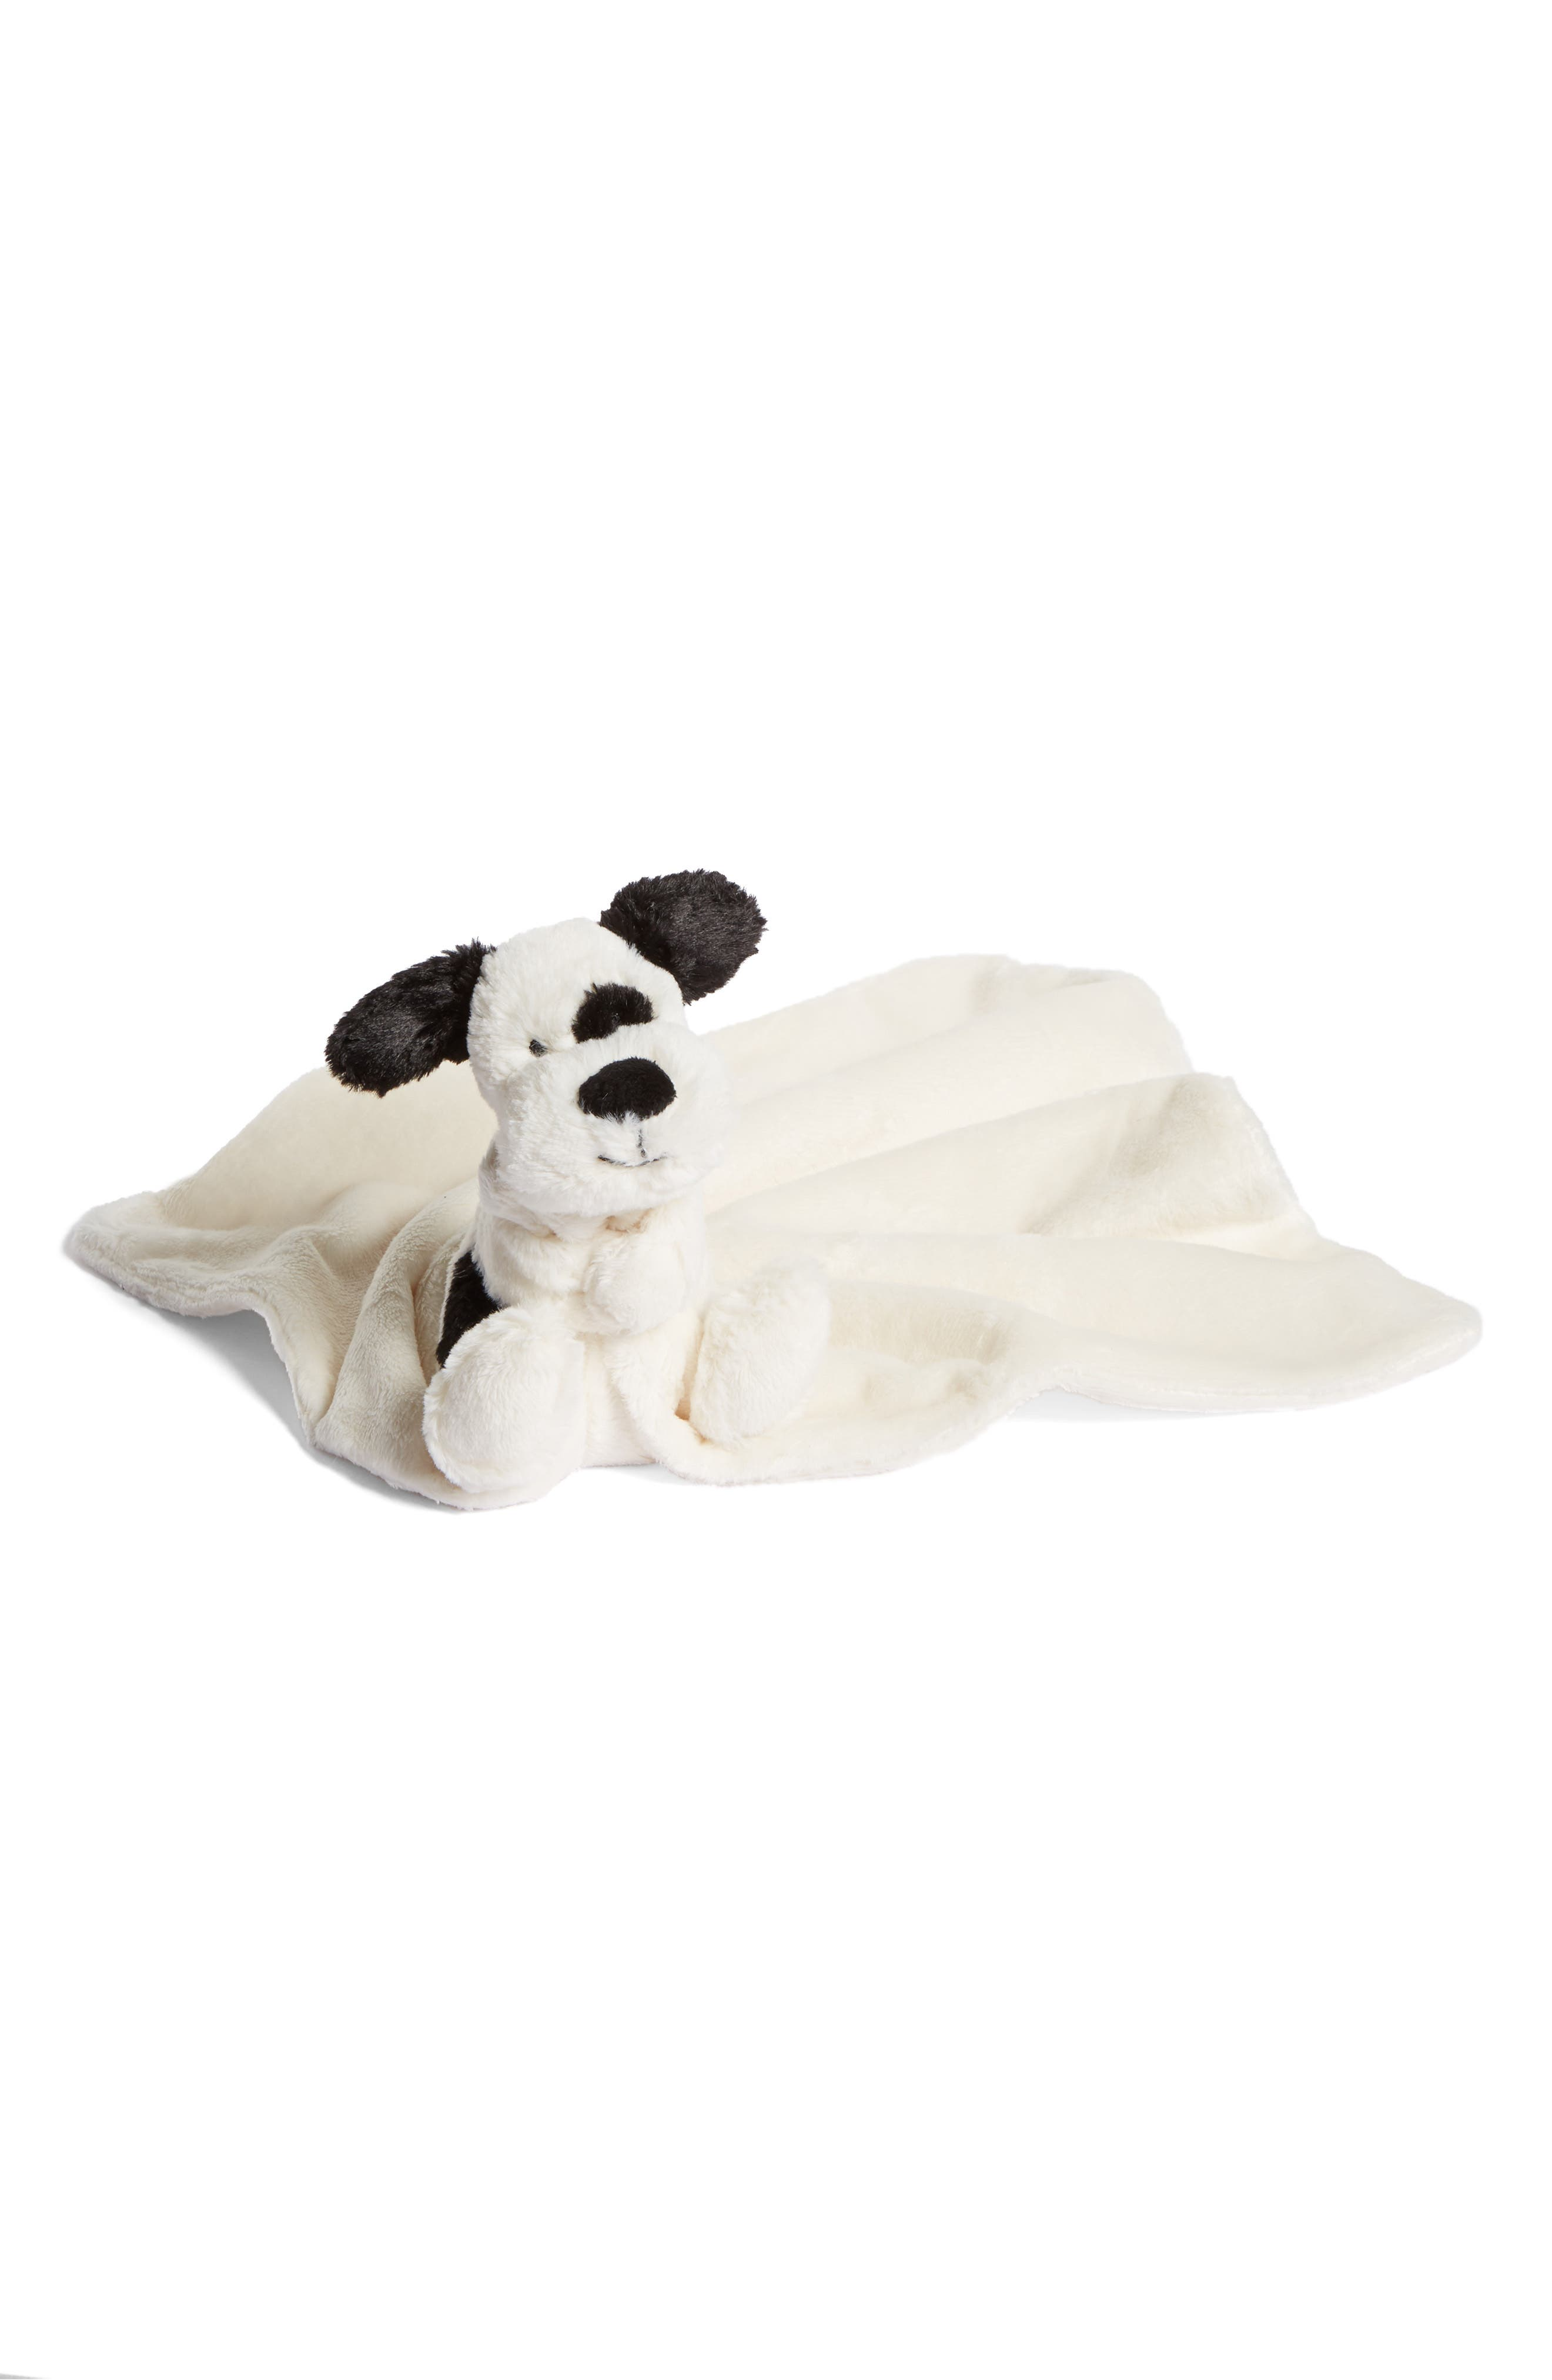 JELLYCAT 'Dog Soother' Blanket, Main, color, BLACK AND CREAM